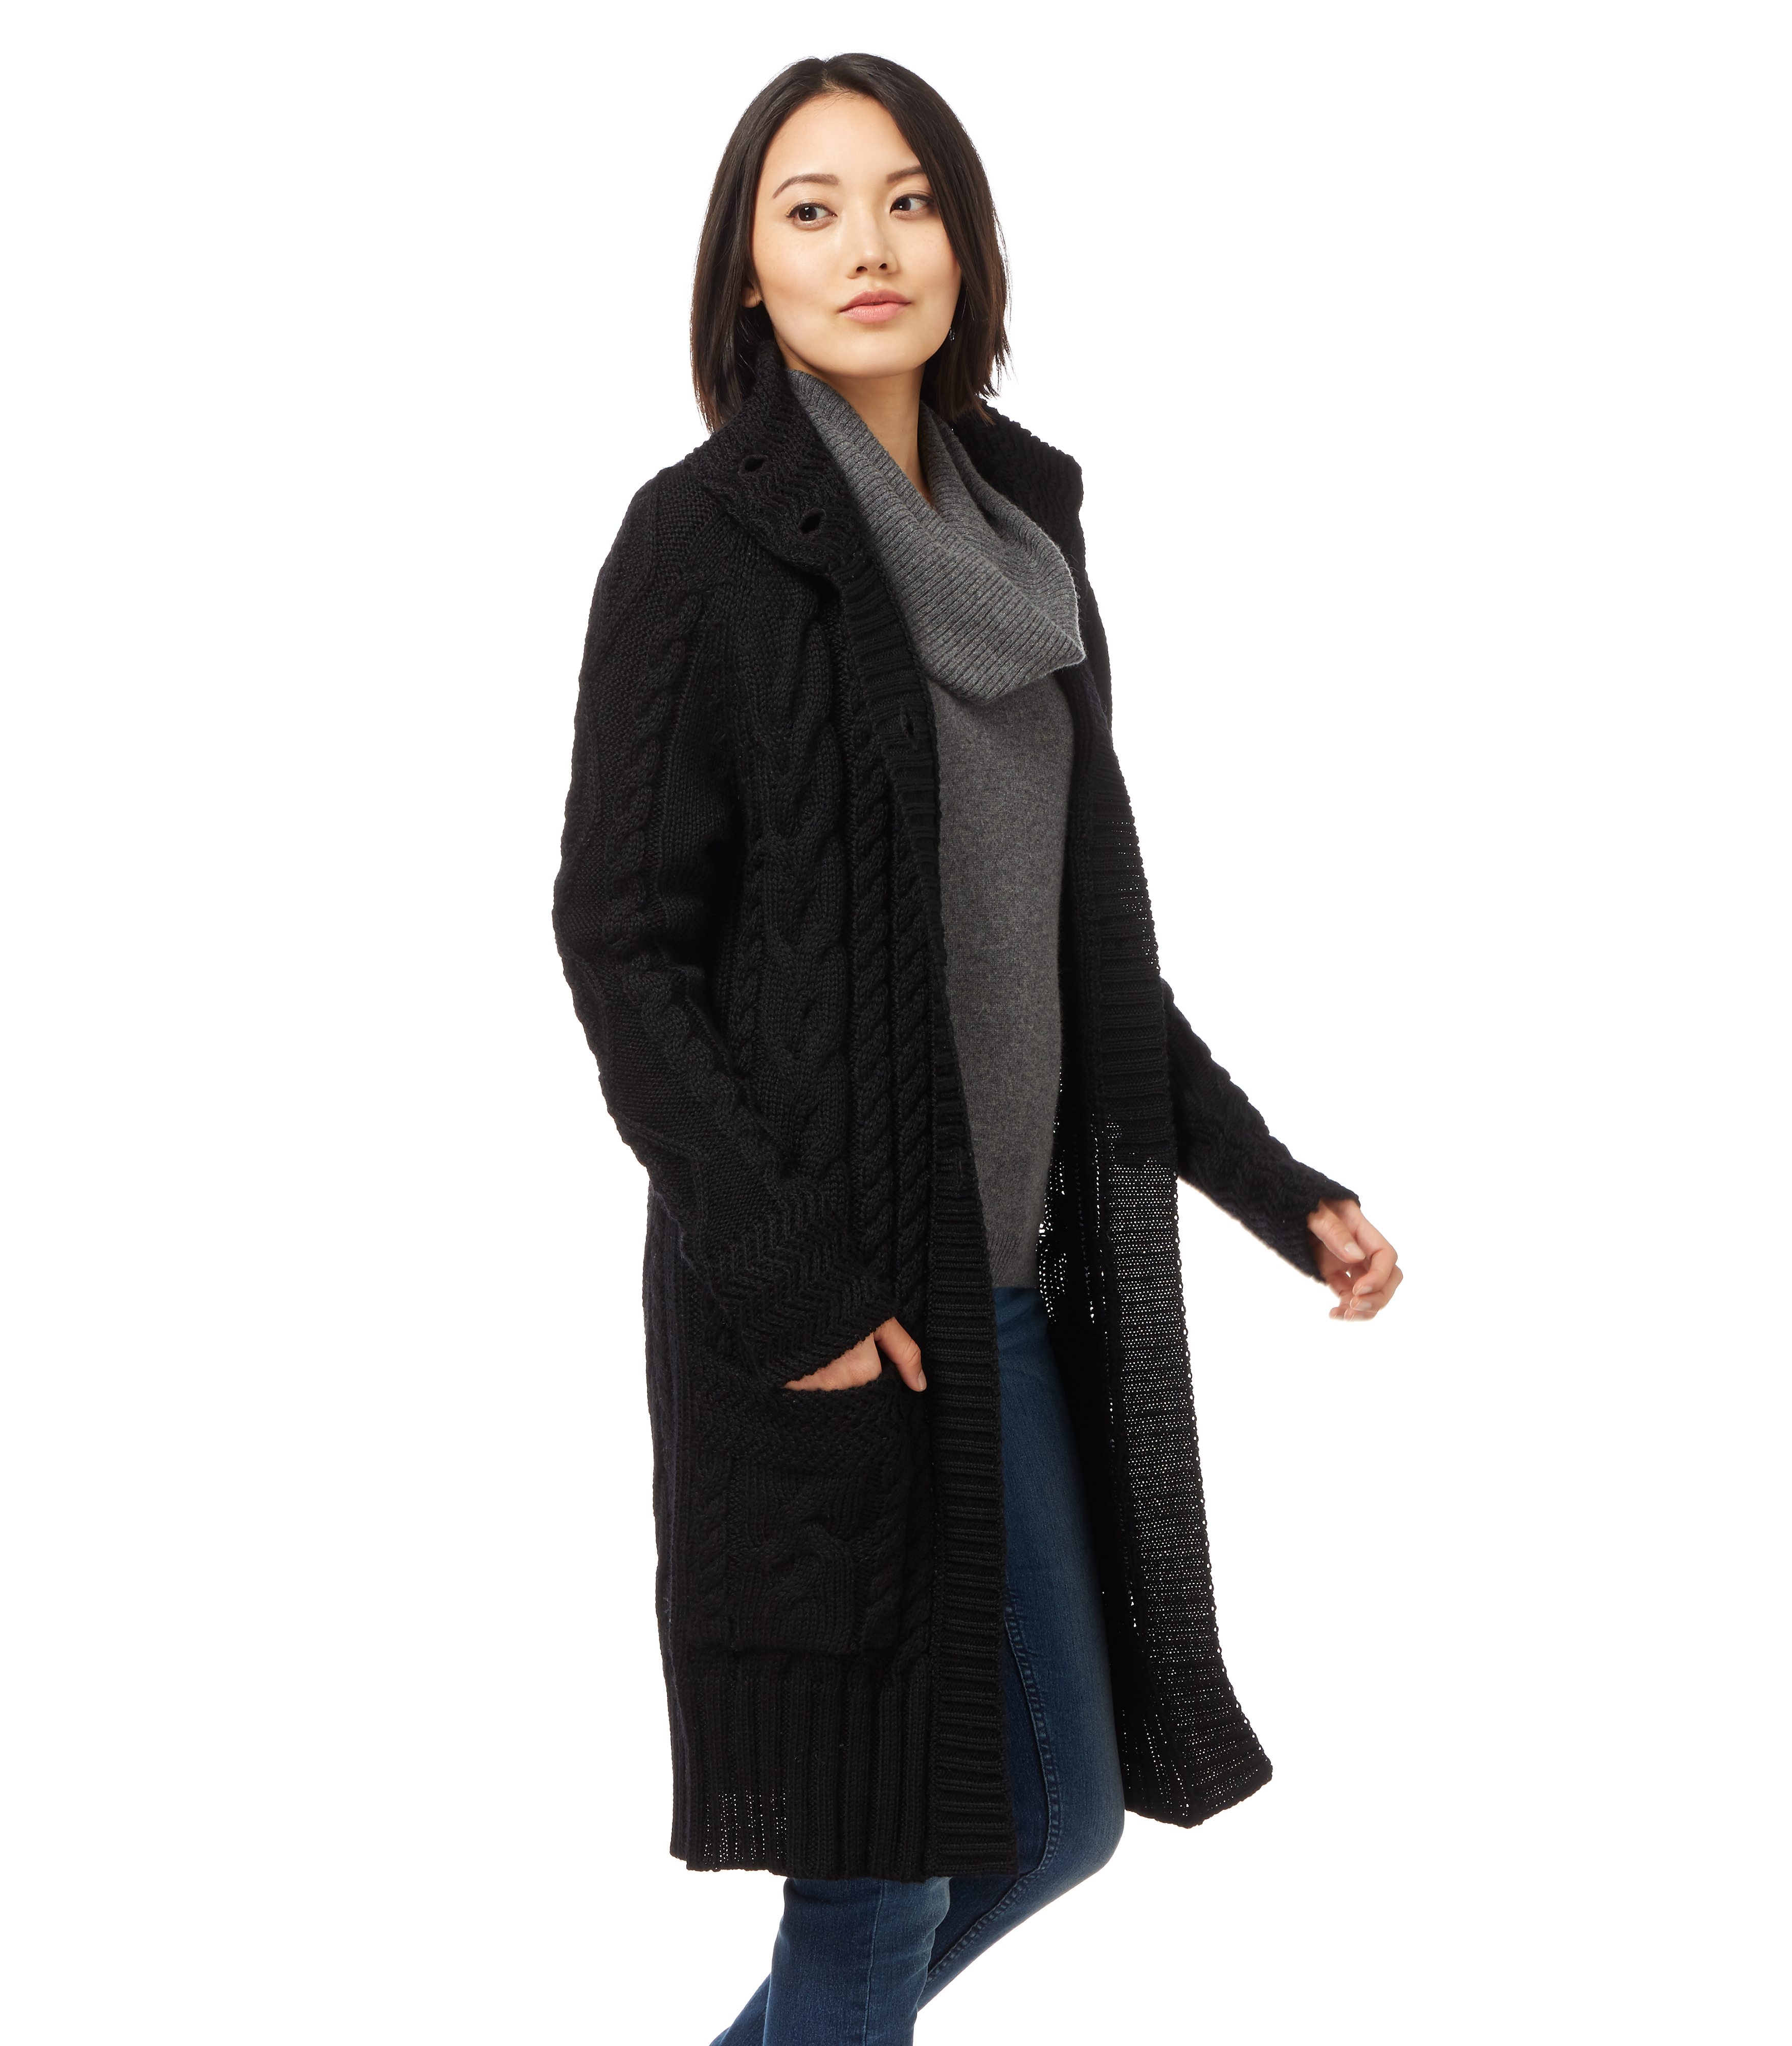 From cable knit wool sweaters to classic women's cardigan sweaters, we have you covered. ciproprescription.ga women's sweaters make it easy to create endless looks youll love simply pair a women's cable sweater with jeans and over-the-knee boots, a cowl neck with dress pants or a turtleneck a with wool blazer.